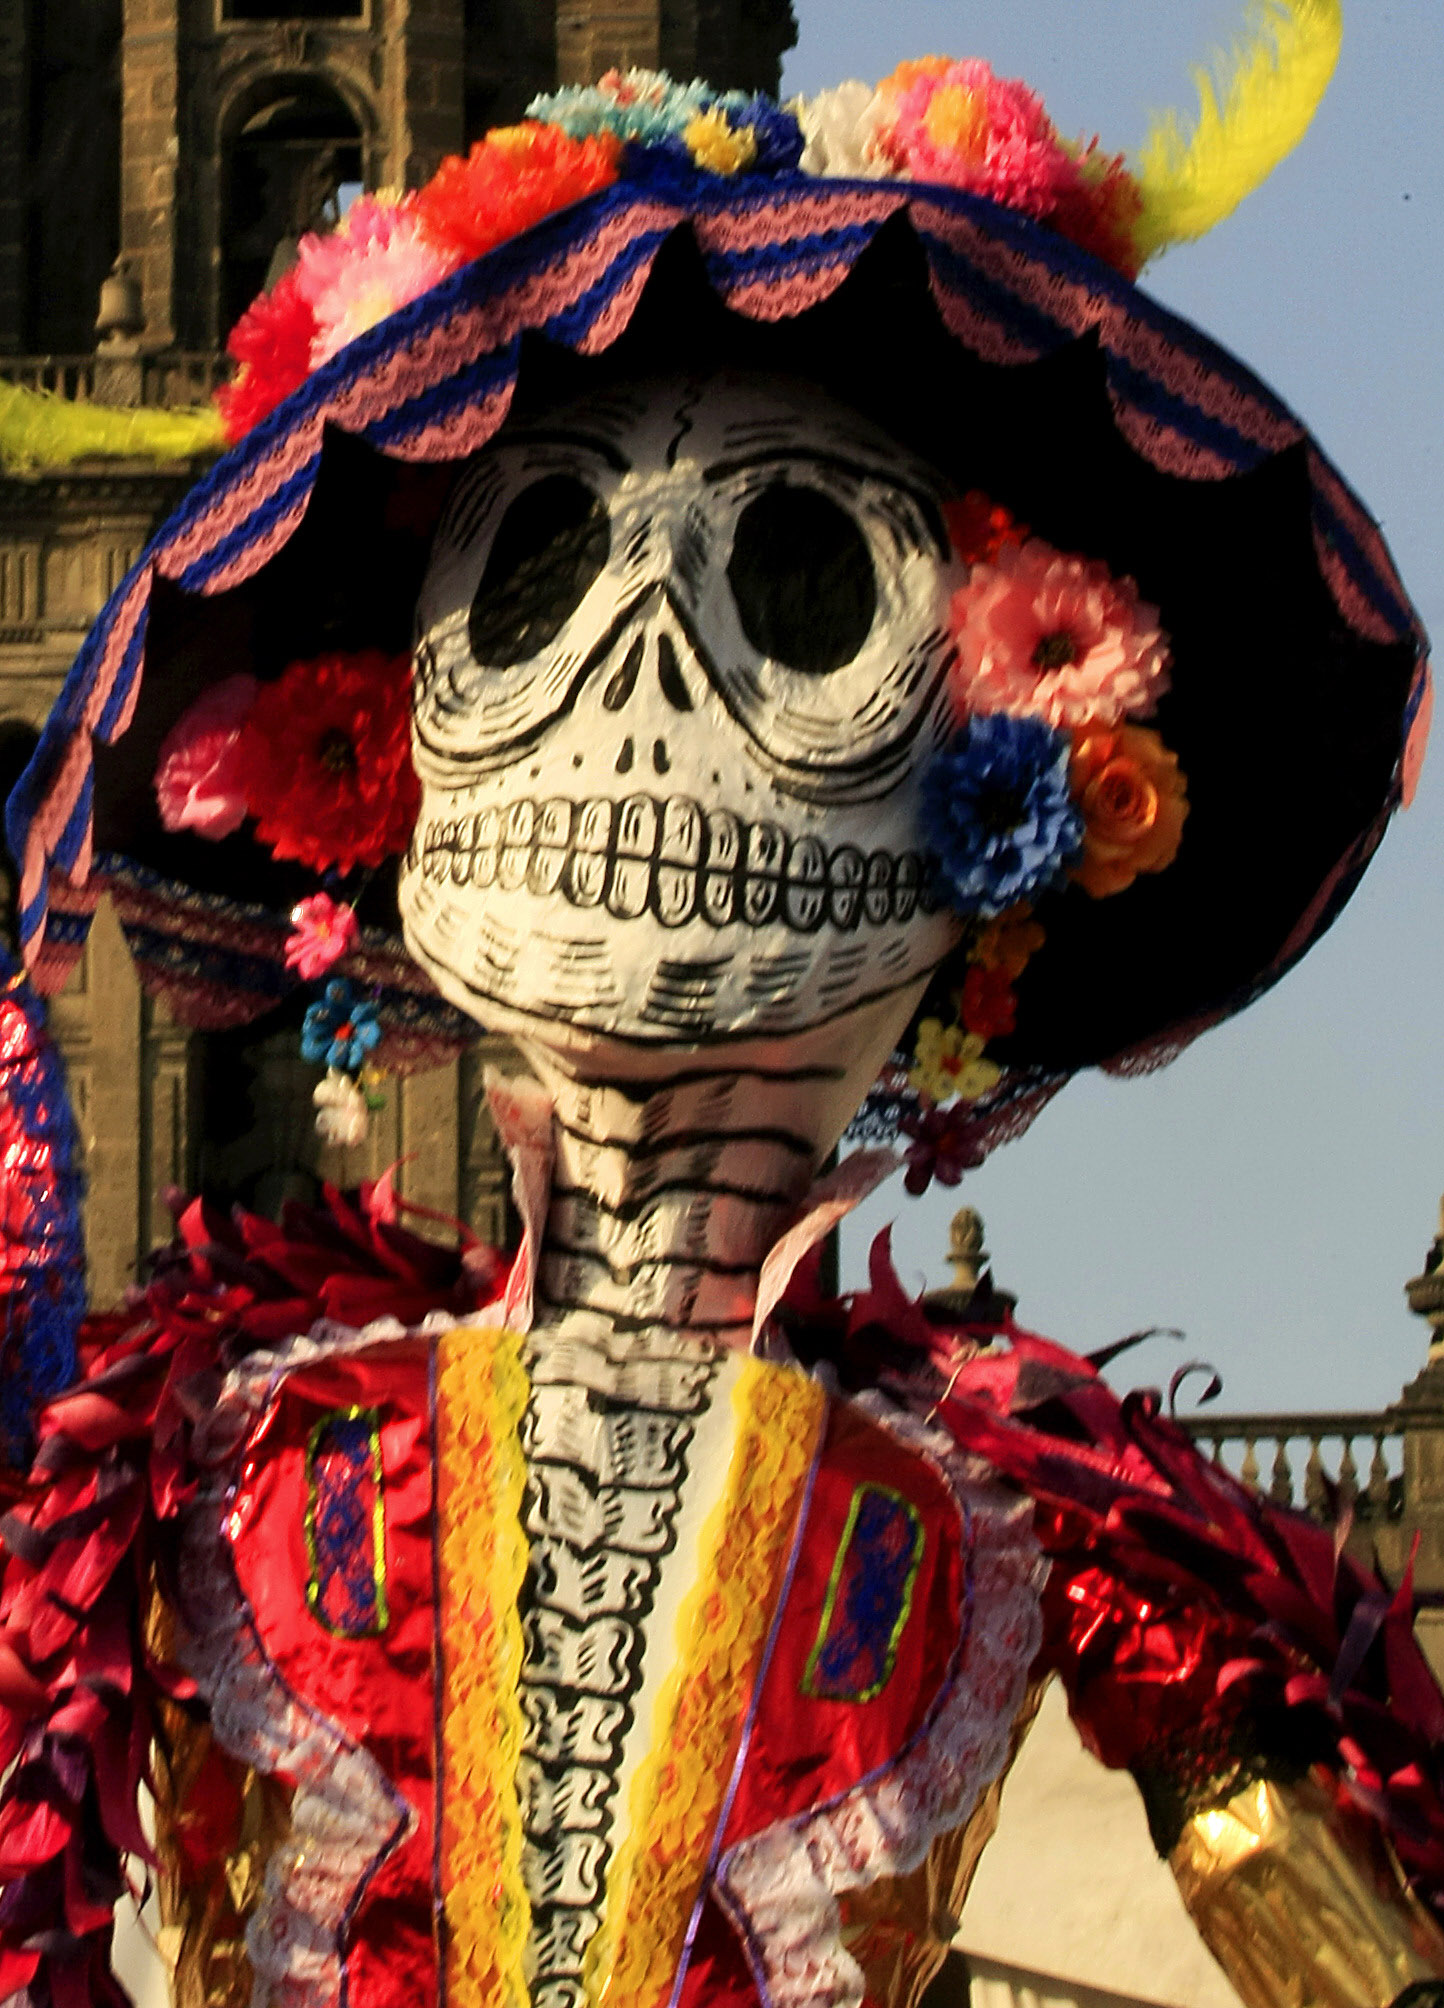 day of the death holiday in mexico Day of the dead (spanish: día de muertos) is a mexican holiday celebrated throughout mexico, in particular the central and south regionsthis holiday coincides with the catholic all soul's & all saint's day, and the indigenous people have combined this with their own ancient beliefs of honoring their deceased loved ones.